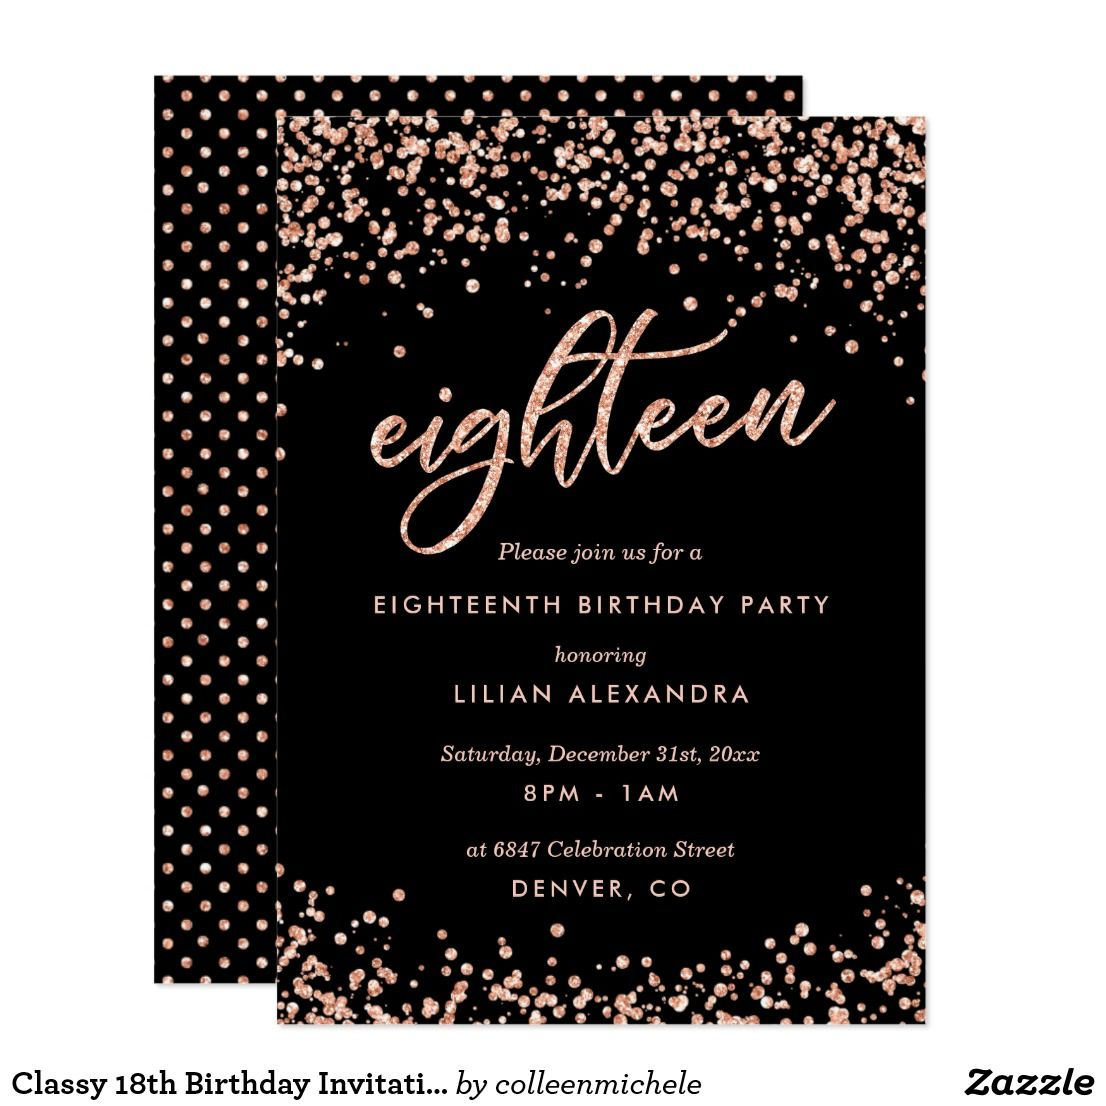 Classy 18th Birthday Invitation Rose Gold Confetti | Birthday Bash ...